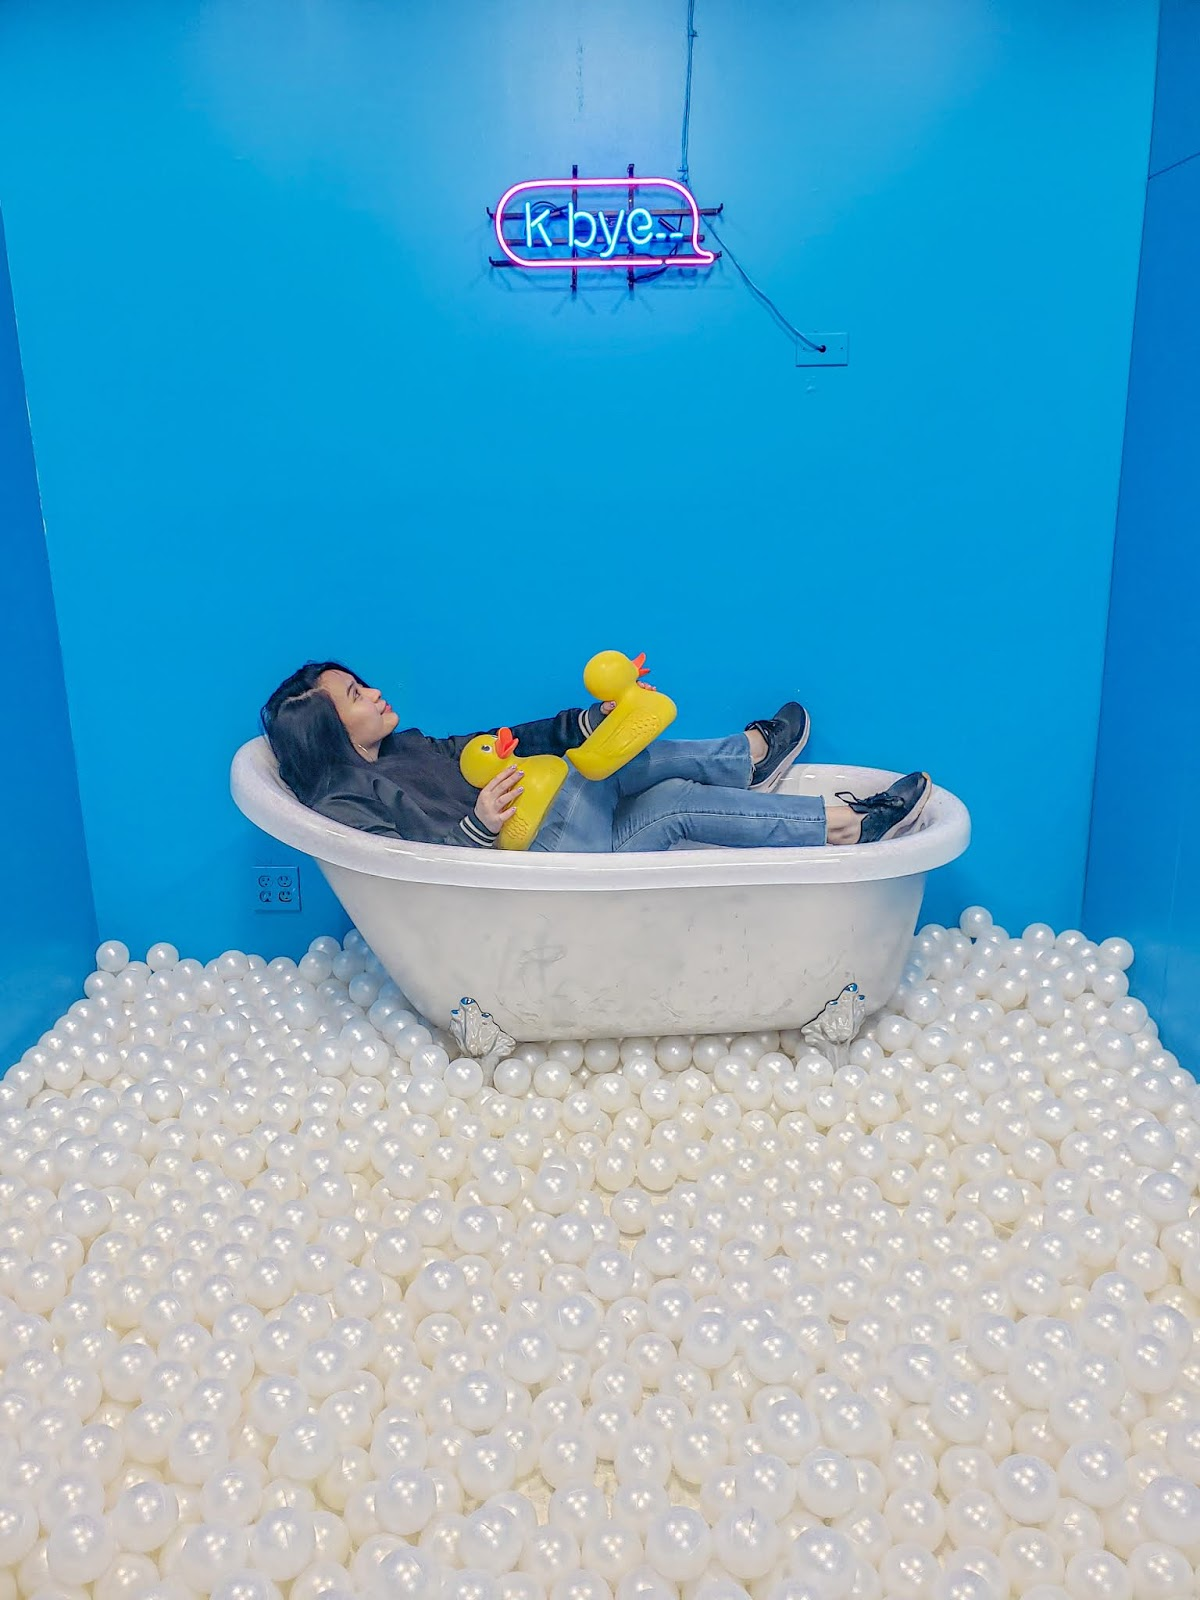 Bath ball pit at the Seattle Selfie Museum in downtown Pike Place Market